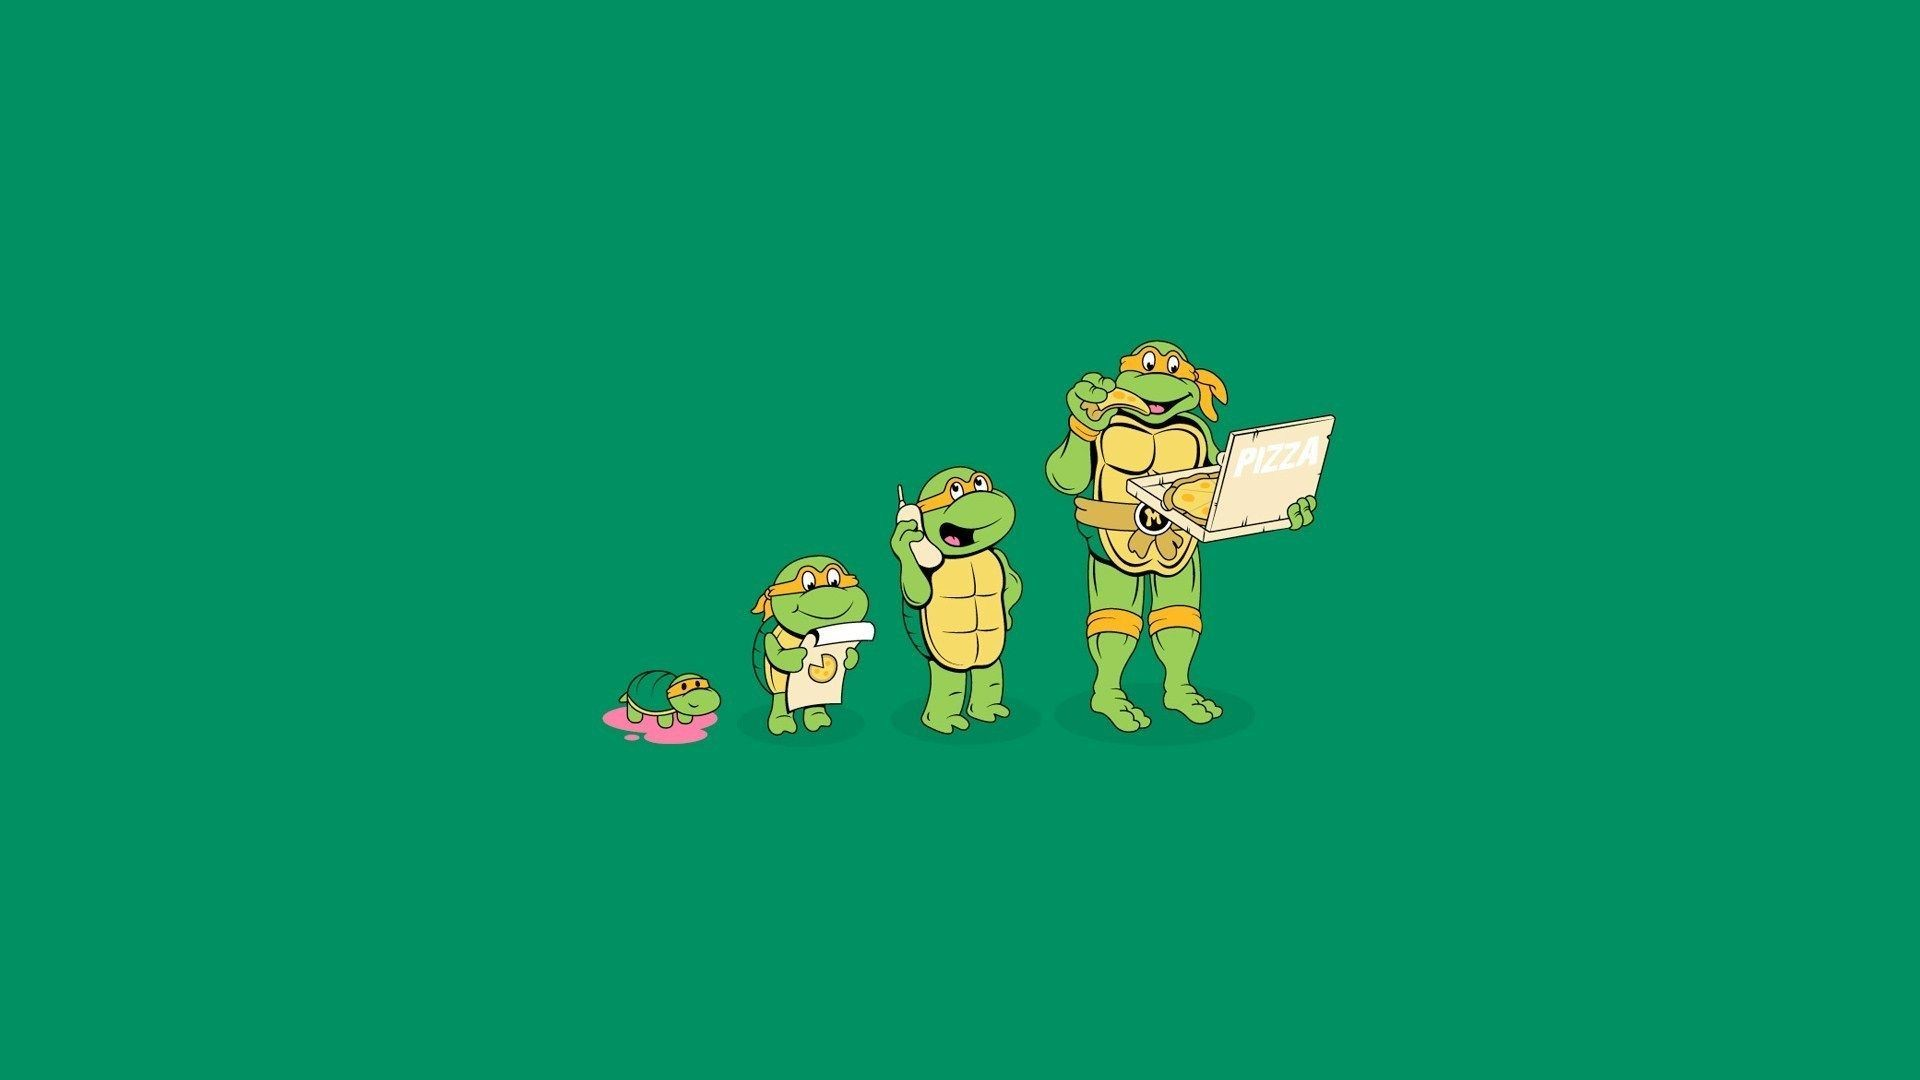 1920x1080 undefined Tmnt Wallpaper (30 Wallpapers) | Adorable Wallpapers